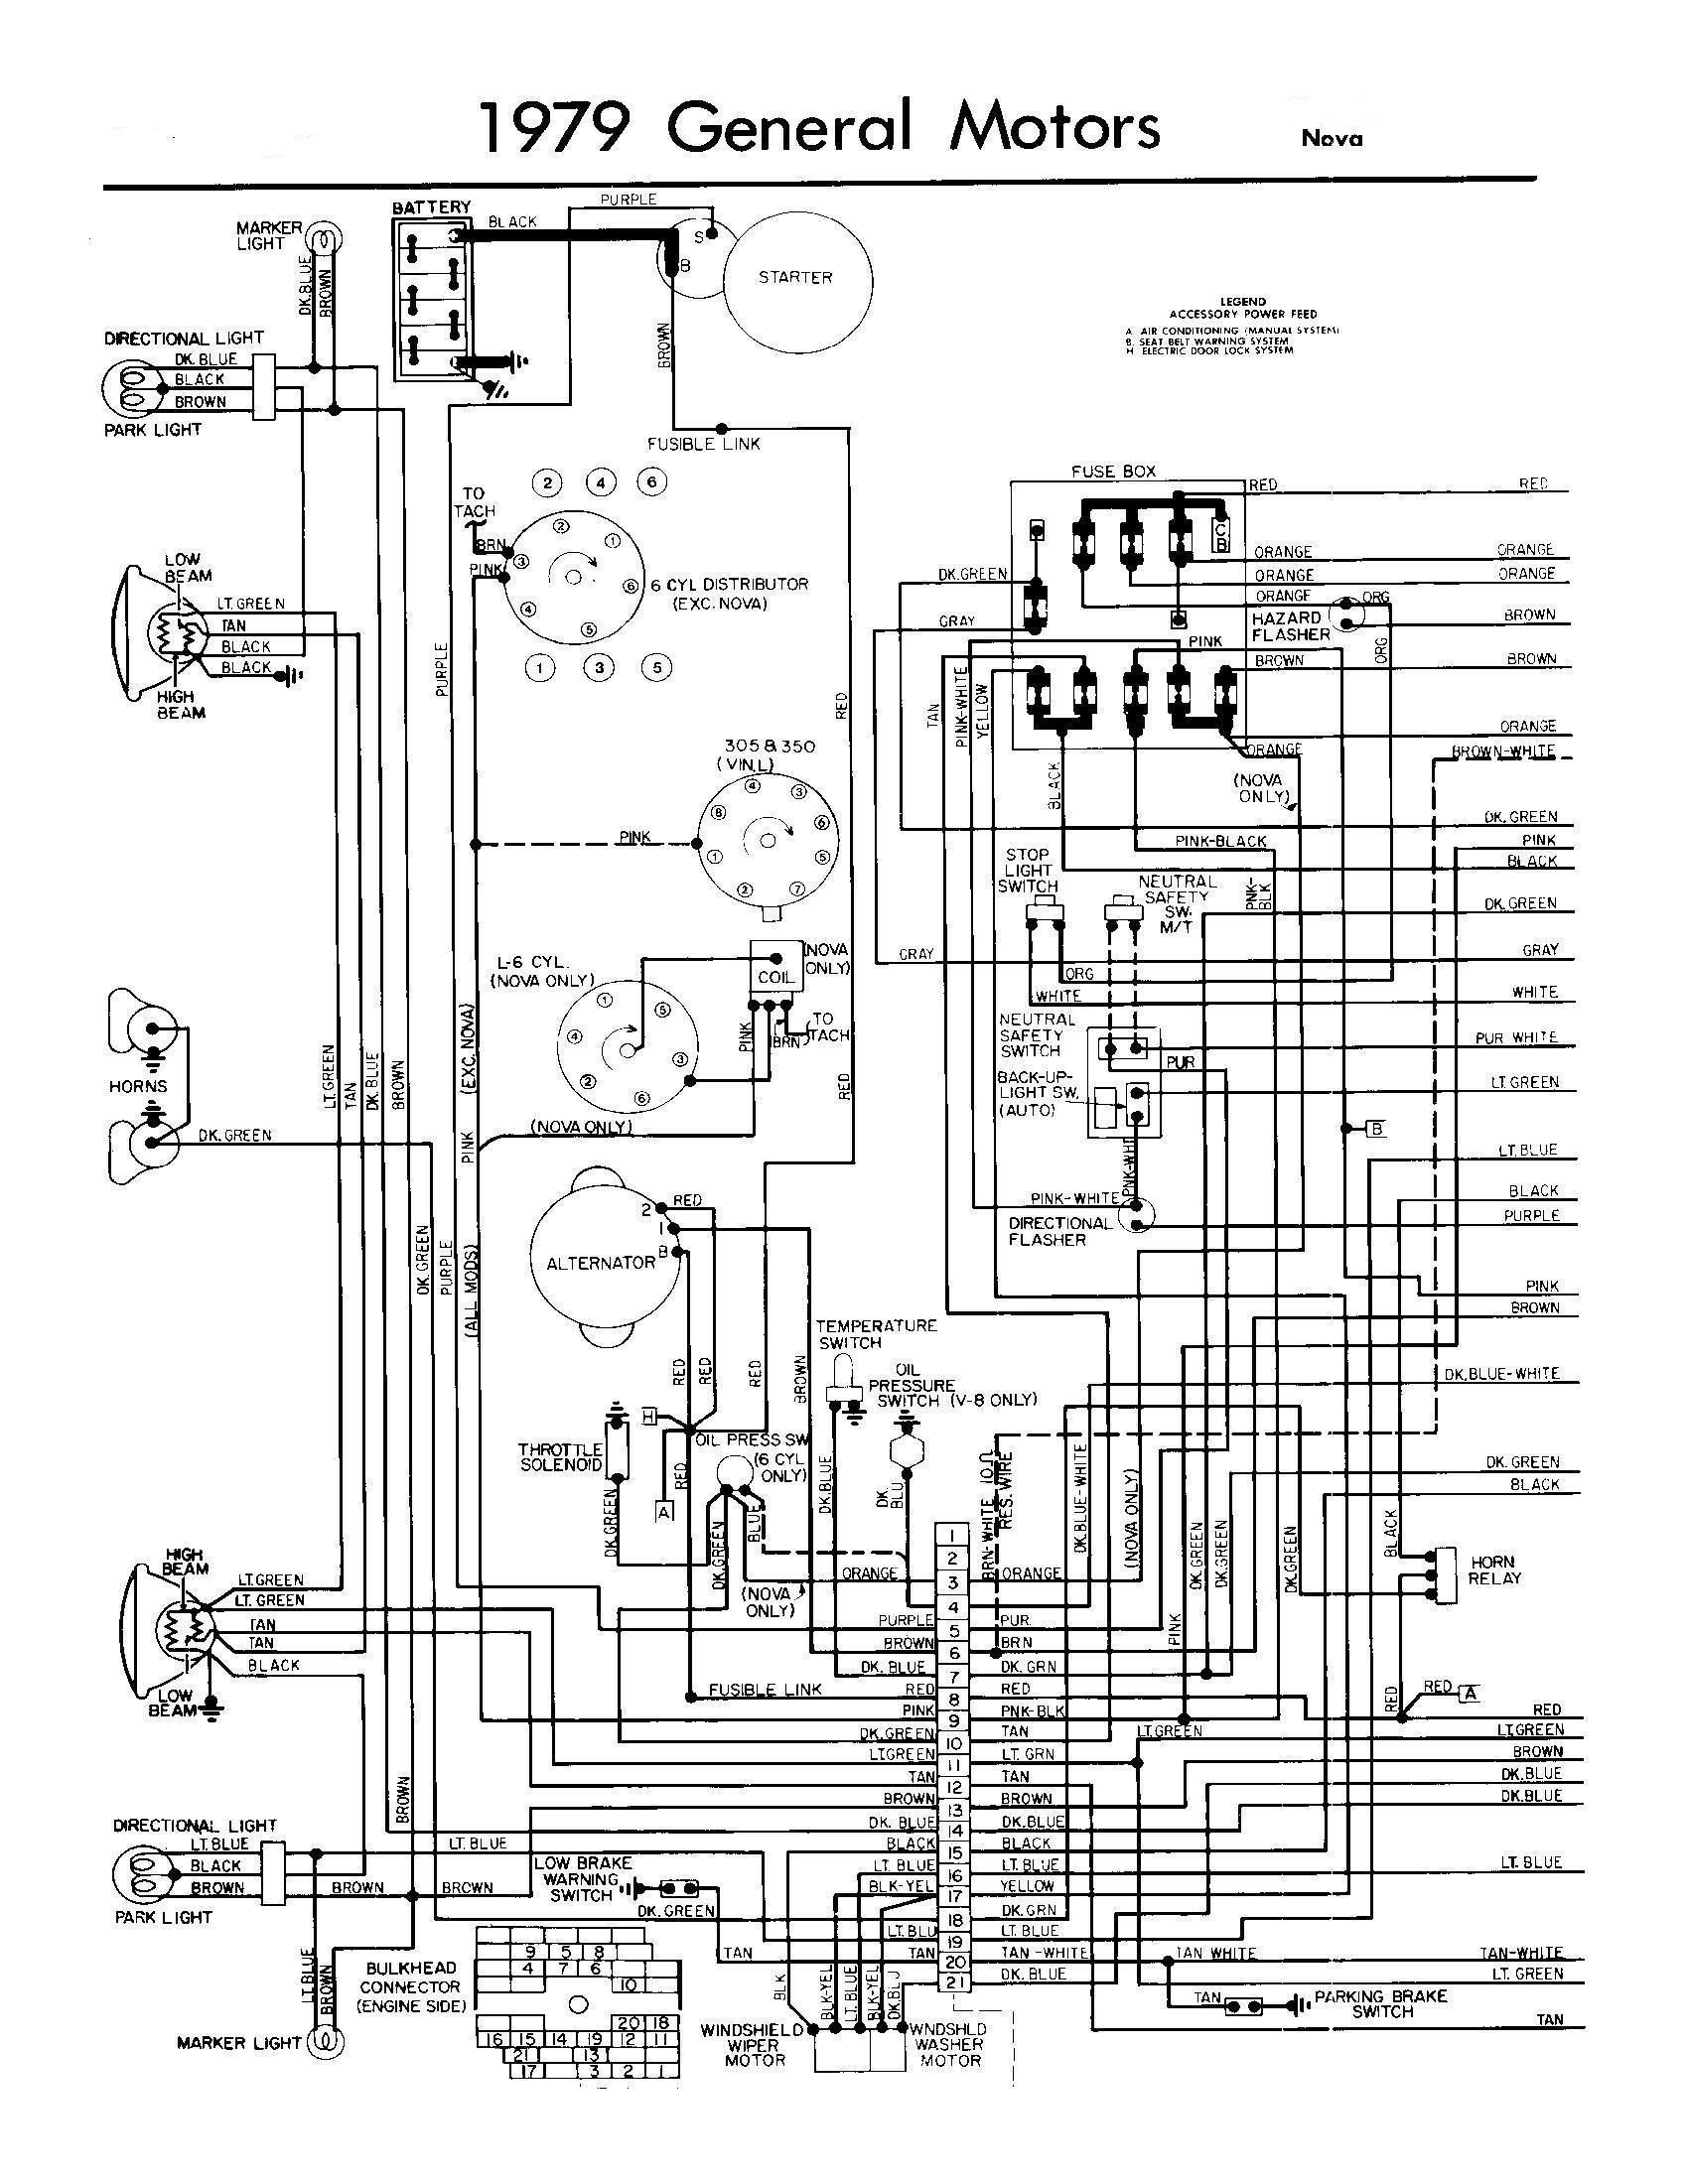 742b Bobcat Wiring Diagram - Wiring Diagram NetworksWiring Diagram Networks - blogger